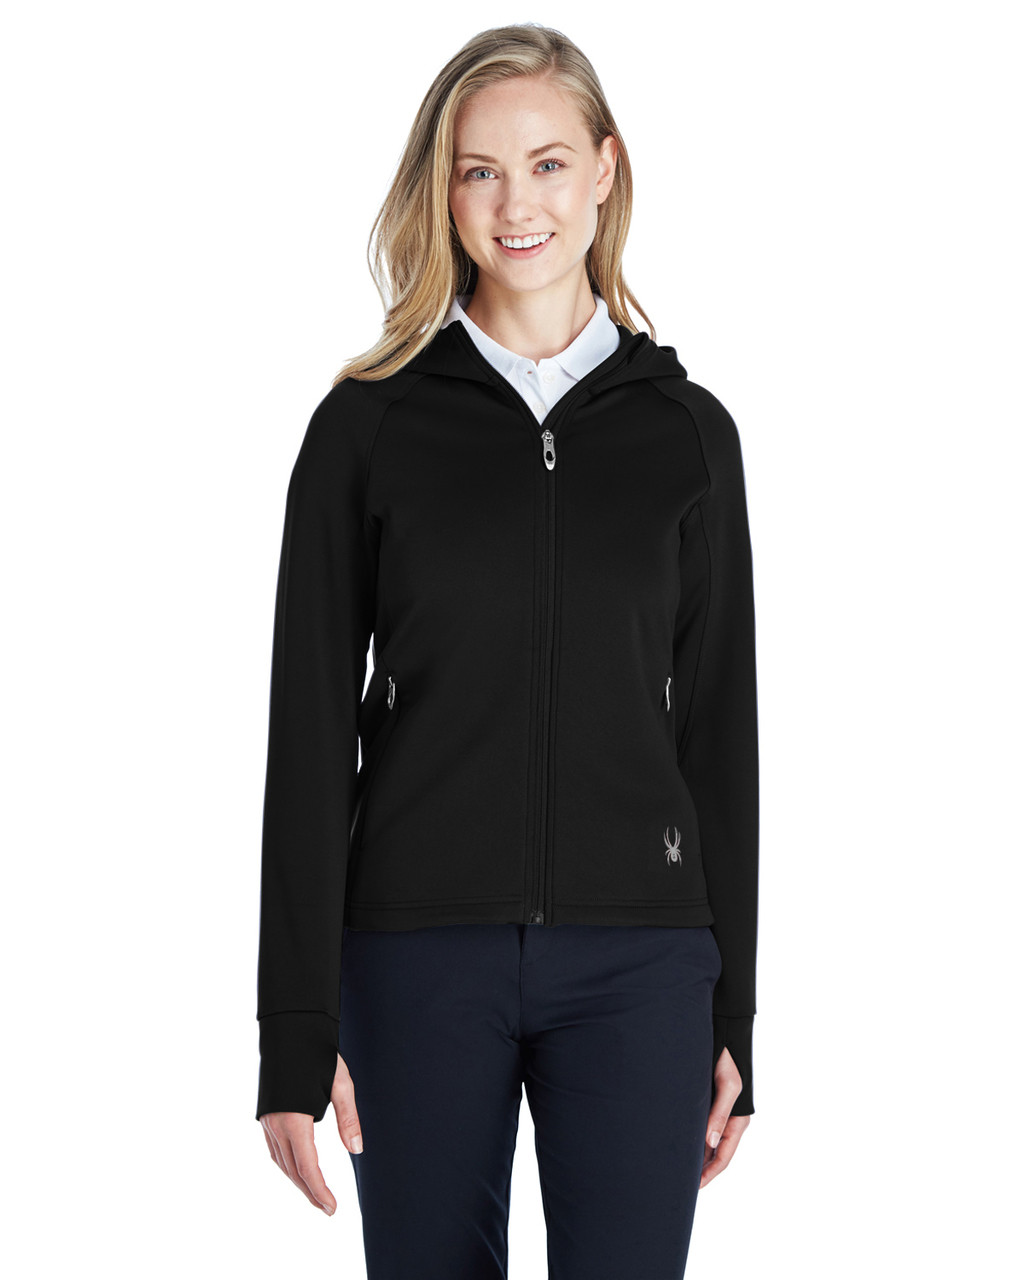 Black/Grey - 187331 Spyder Ladies' Hayer Full-Zip Z Hooded Fleece Jacket | BlankClothing.ca